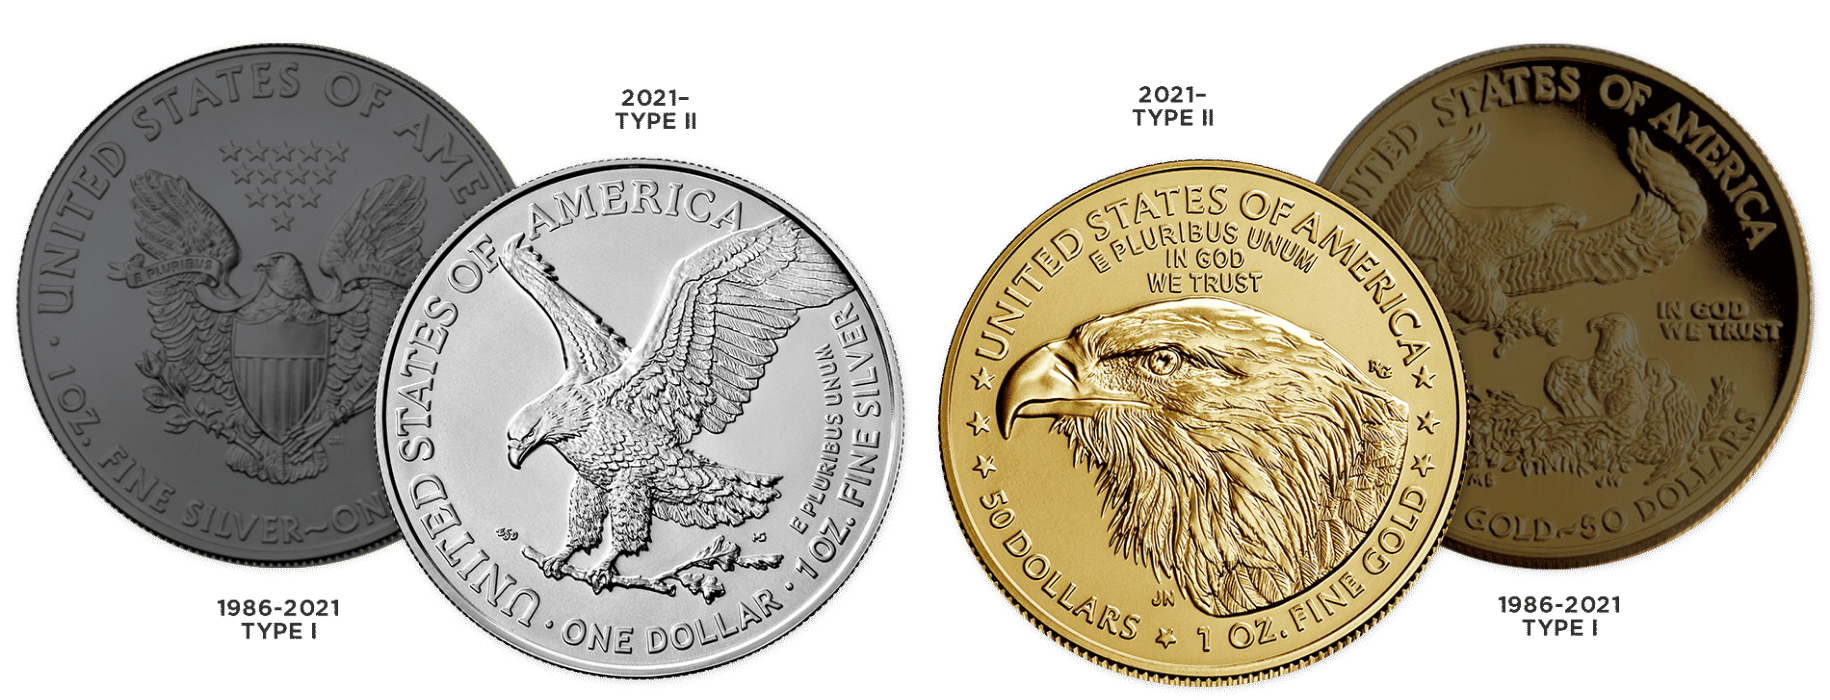 Type 1 and Type 2 American Gold and Silver Eagle reverse